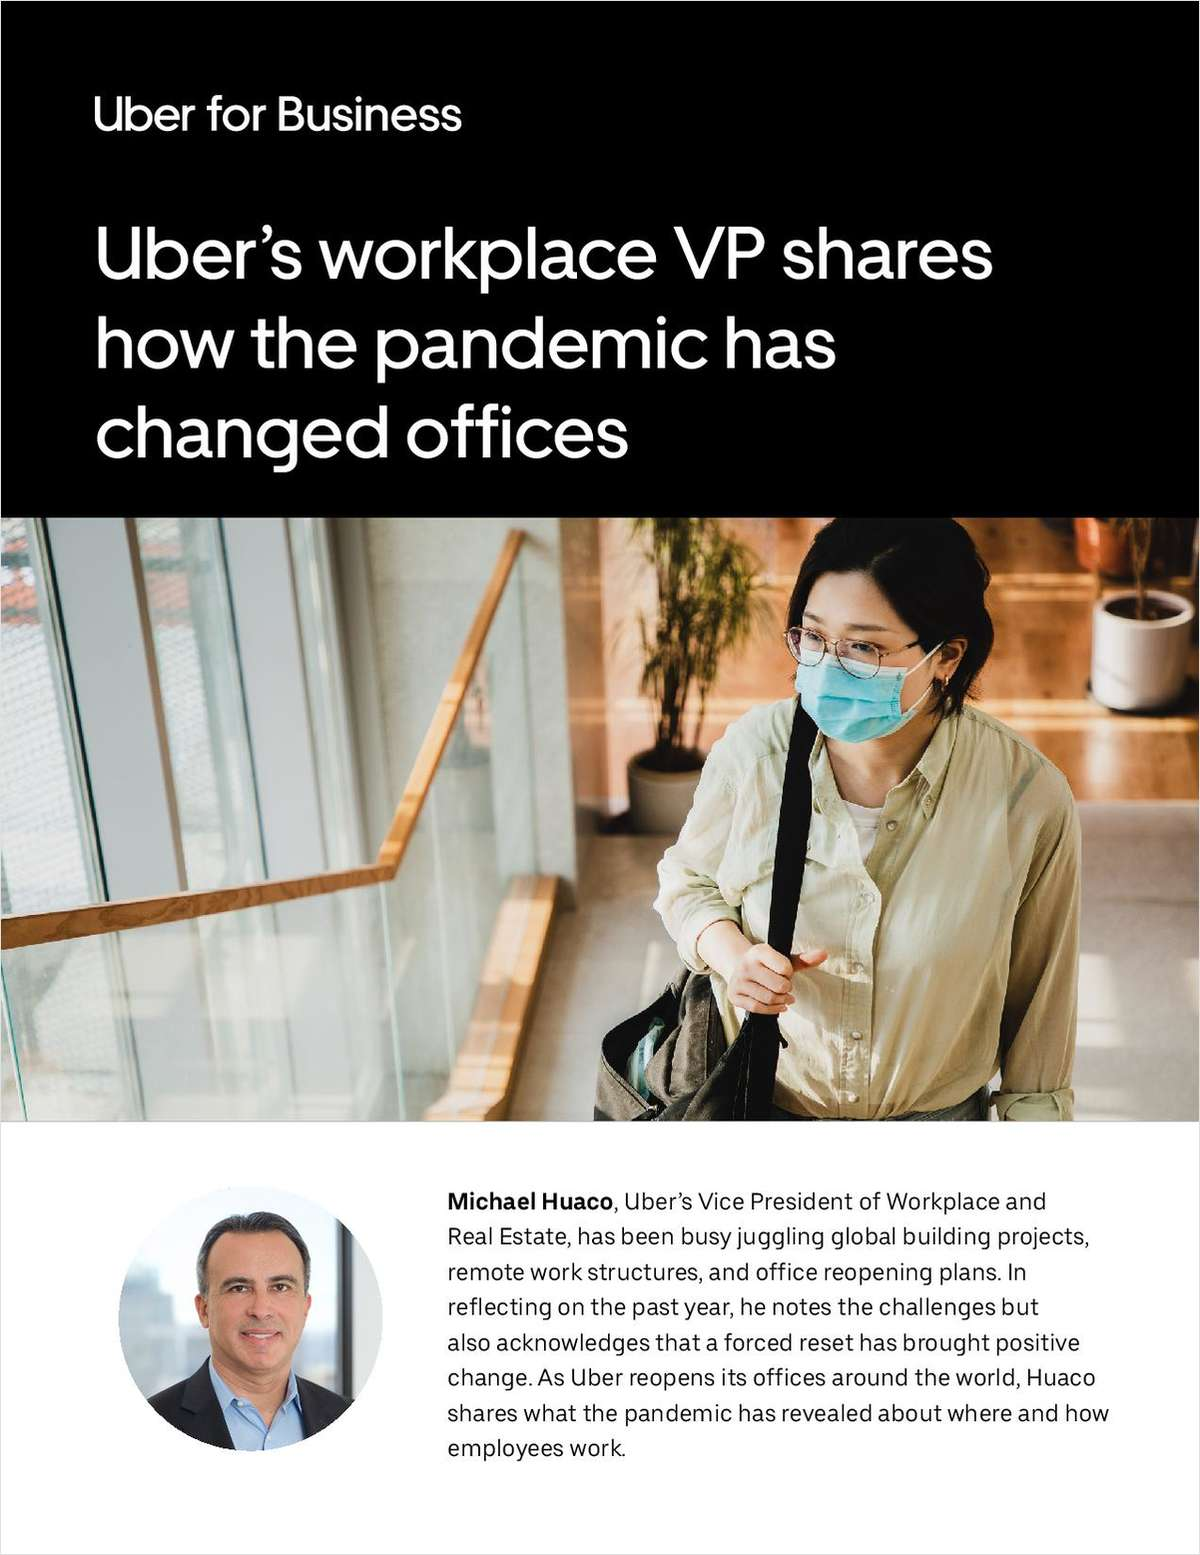 Uber's workplace VP shares how the pandemic has changed offices